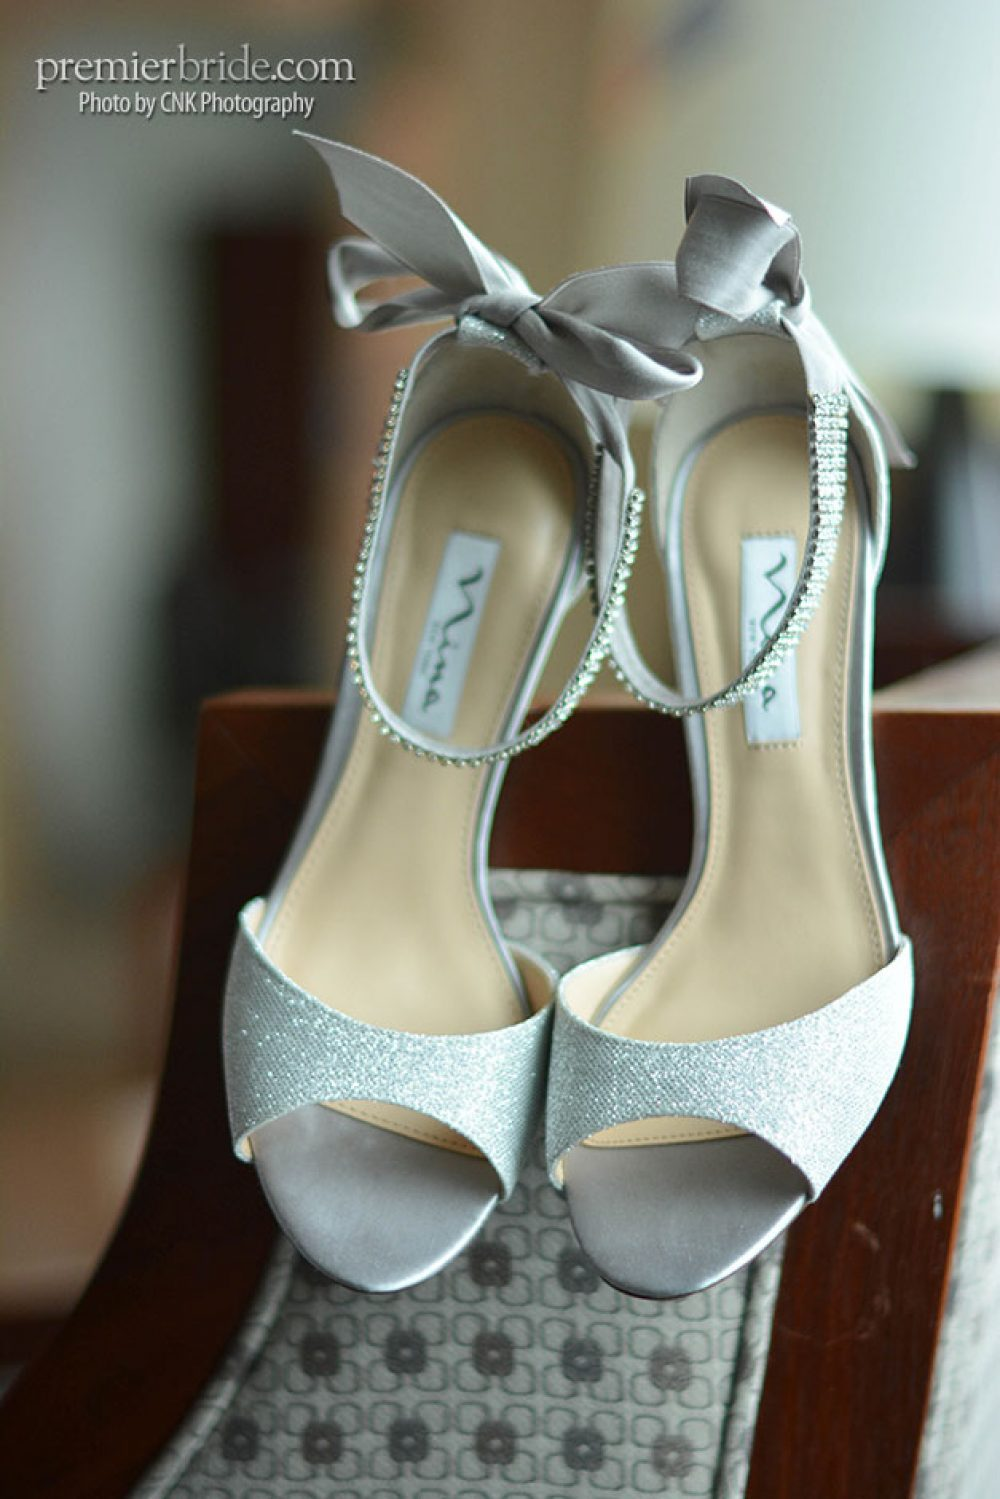 Brides shoes from Alfred Angelo